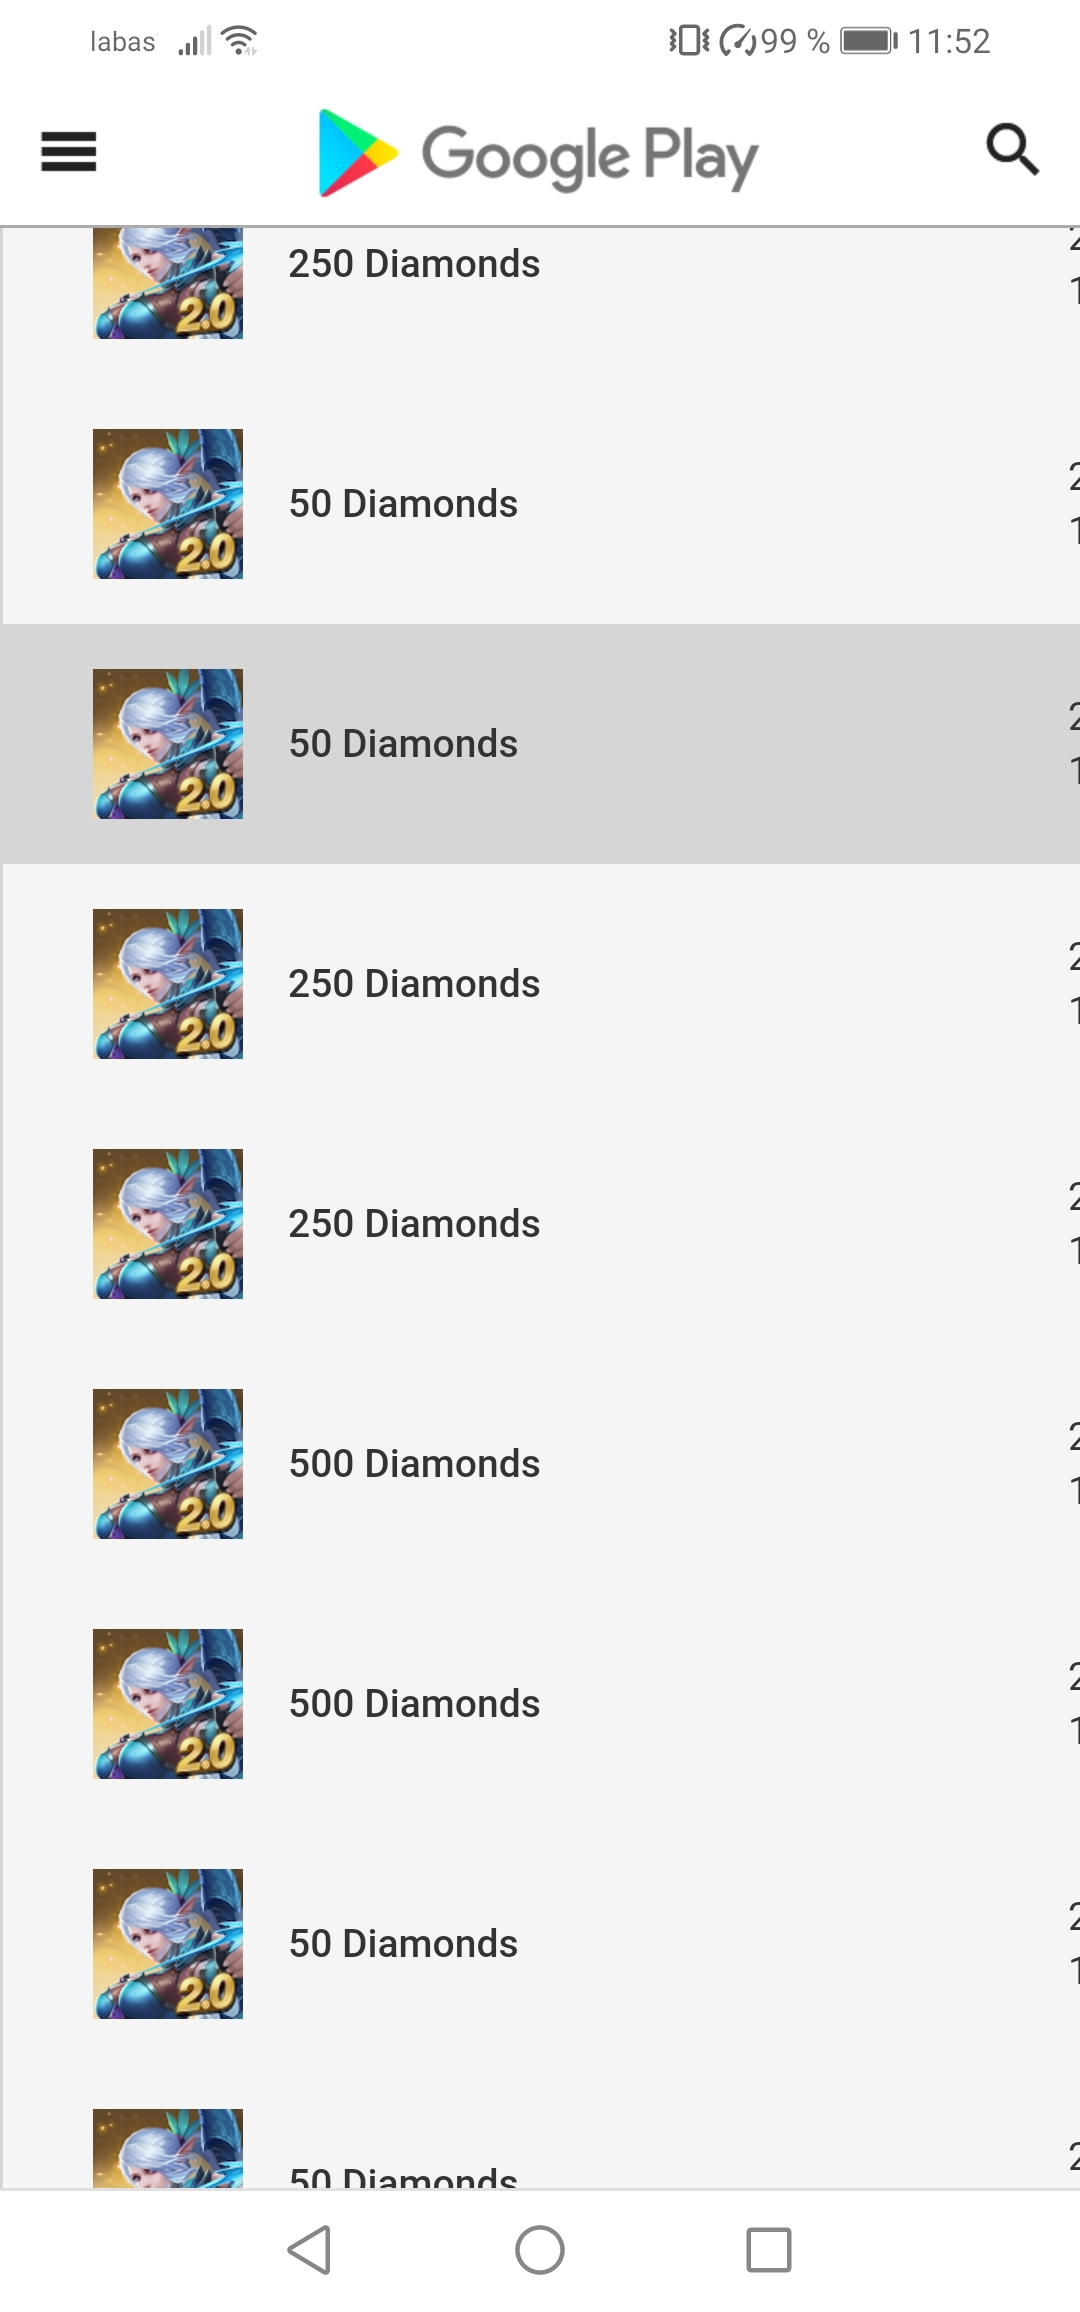 That I really bought diamonds